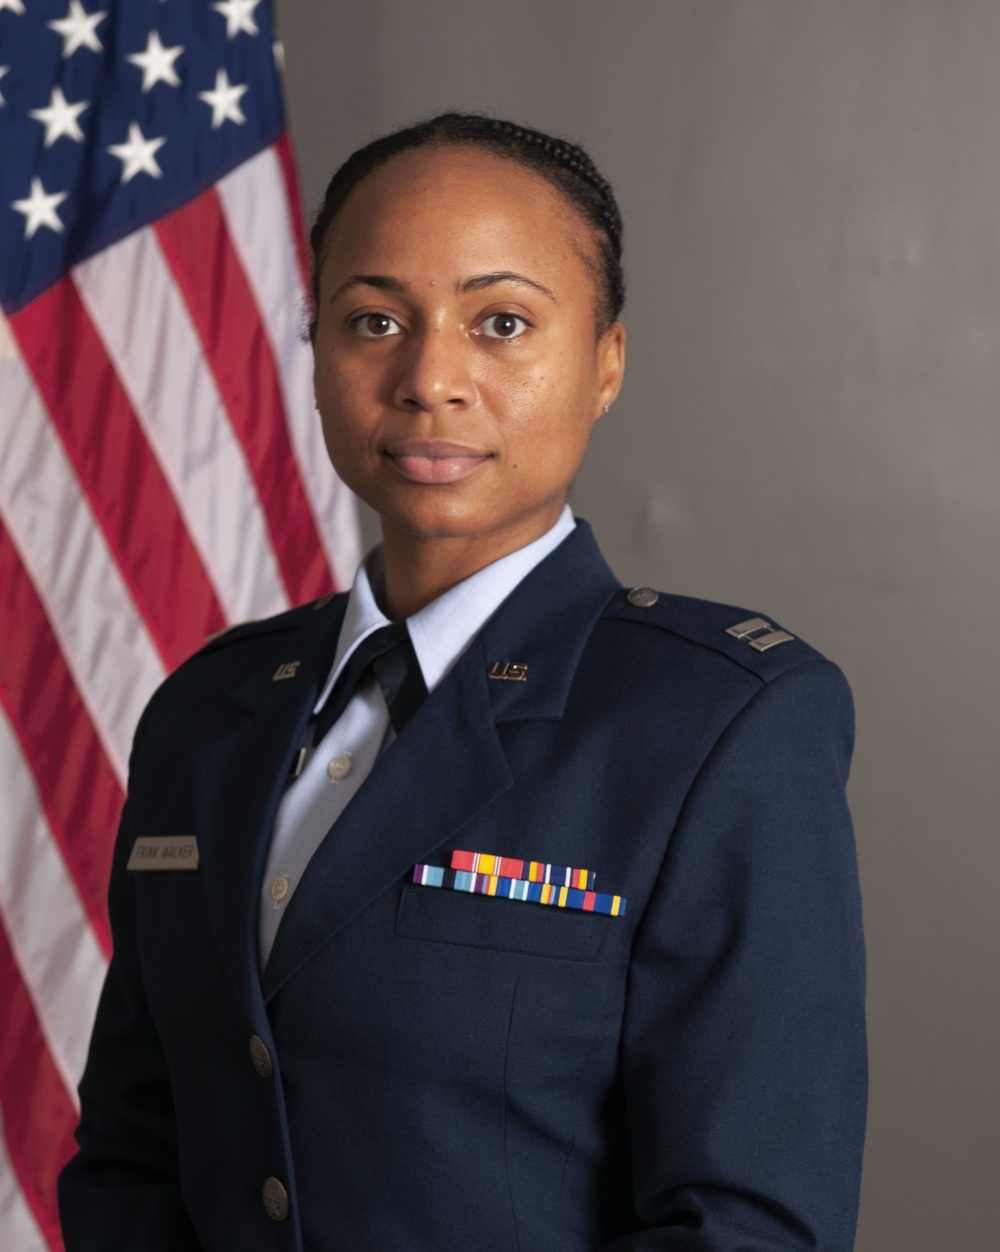 EO Director adds to impressive career with JAG Corps acceptance